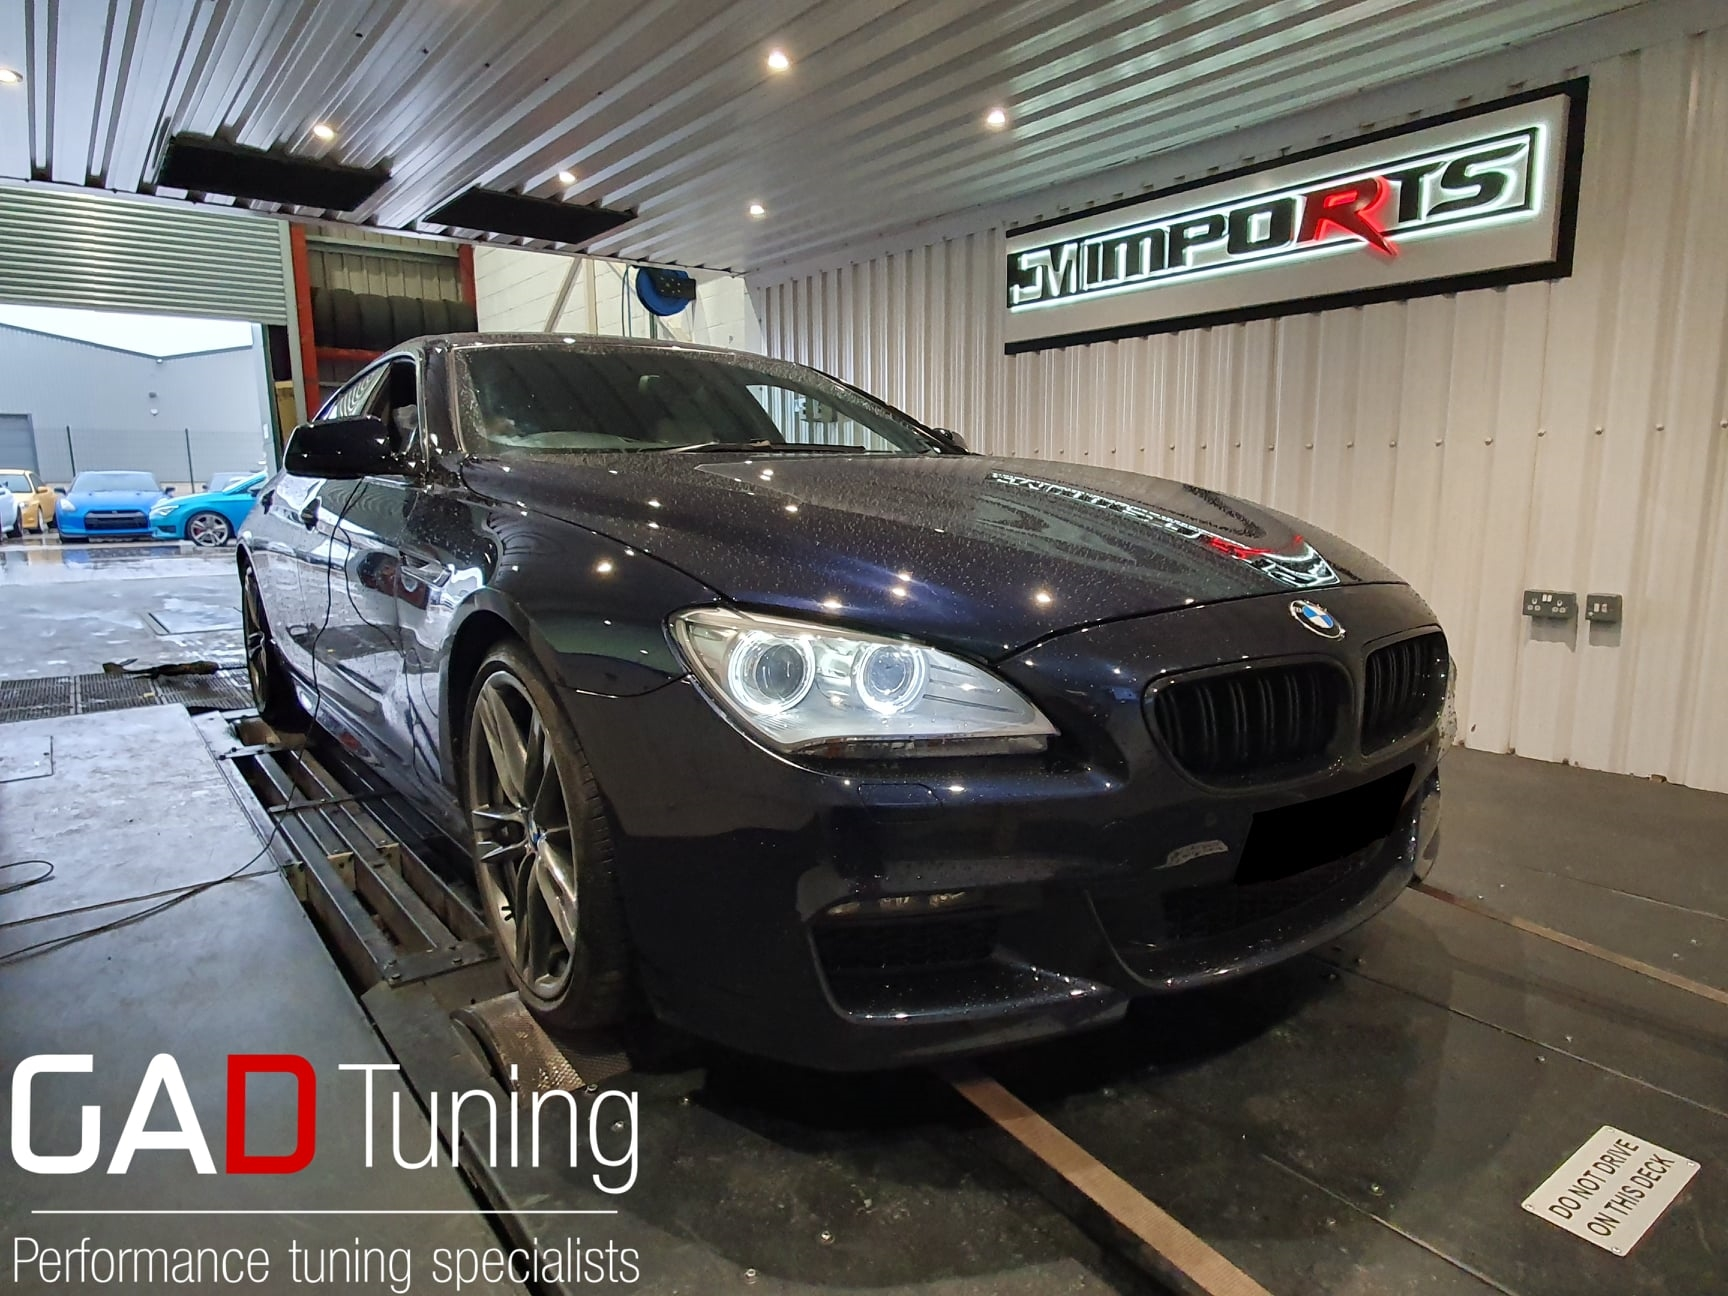 BMW 640d in for stage 1 tuning & dyno